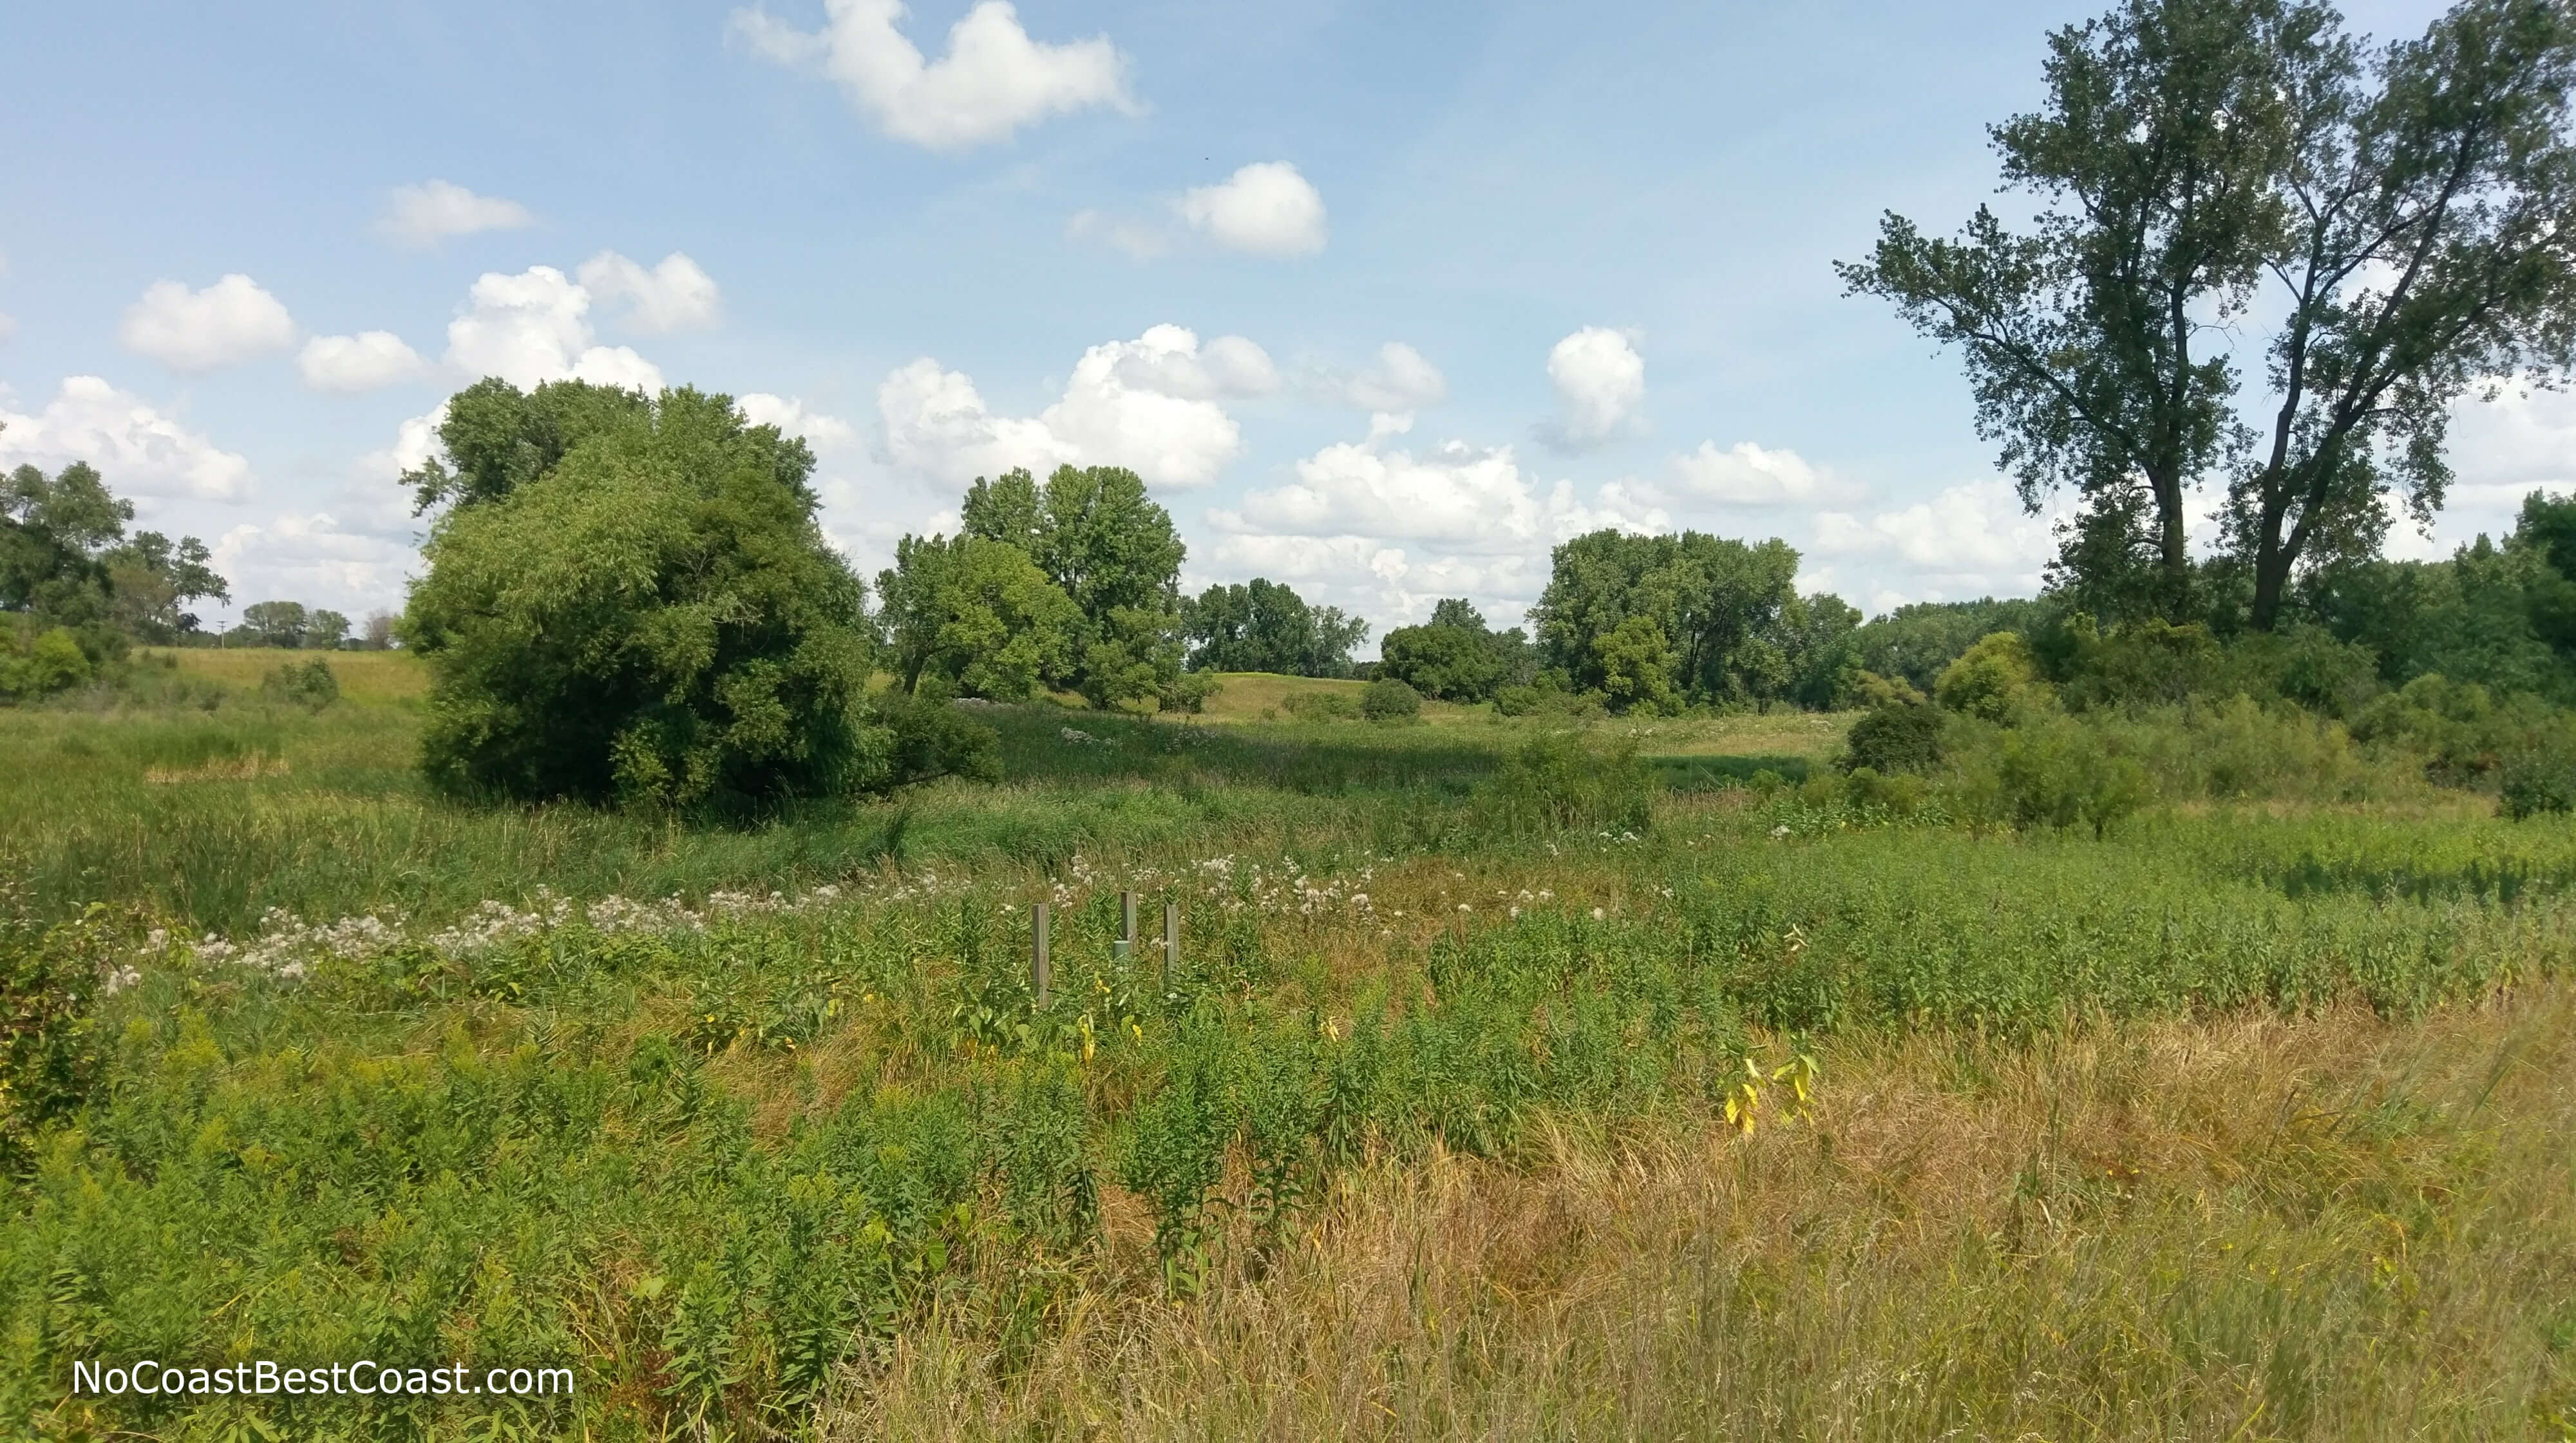 Trees and wildflowers dot the prairie landscape along the Rice Creek North Regional Trail